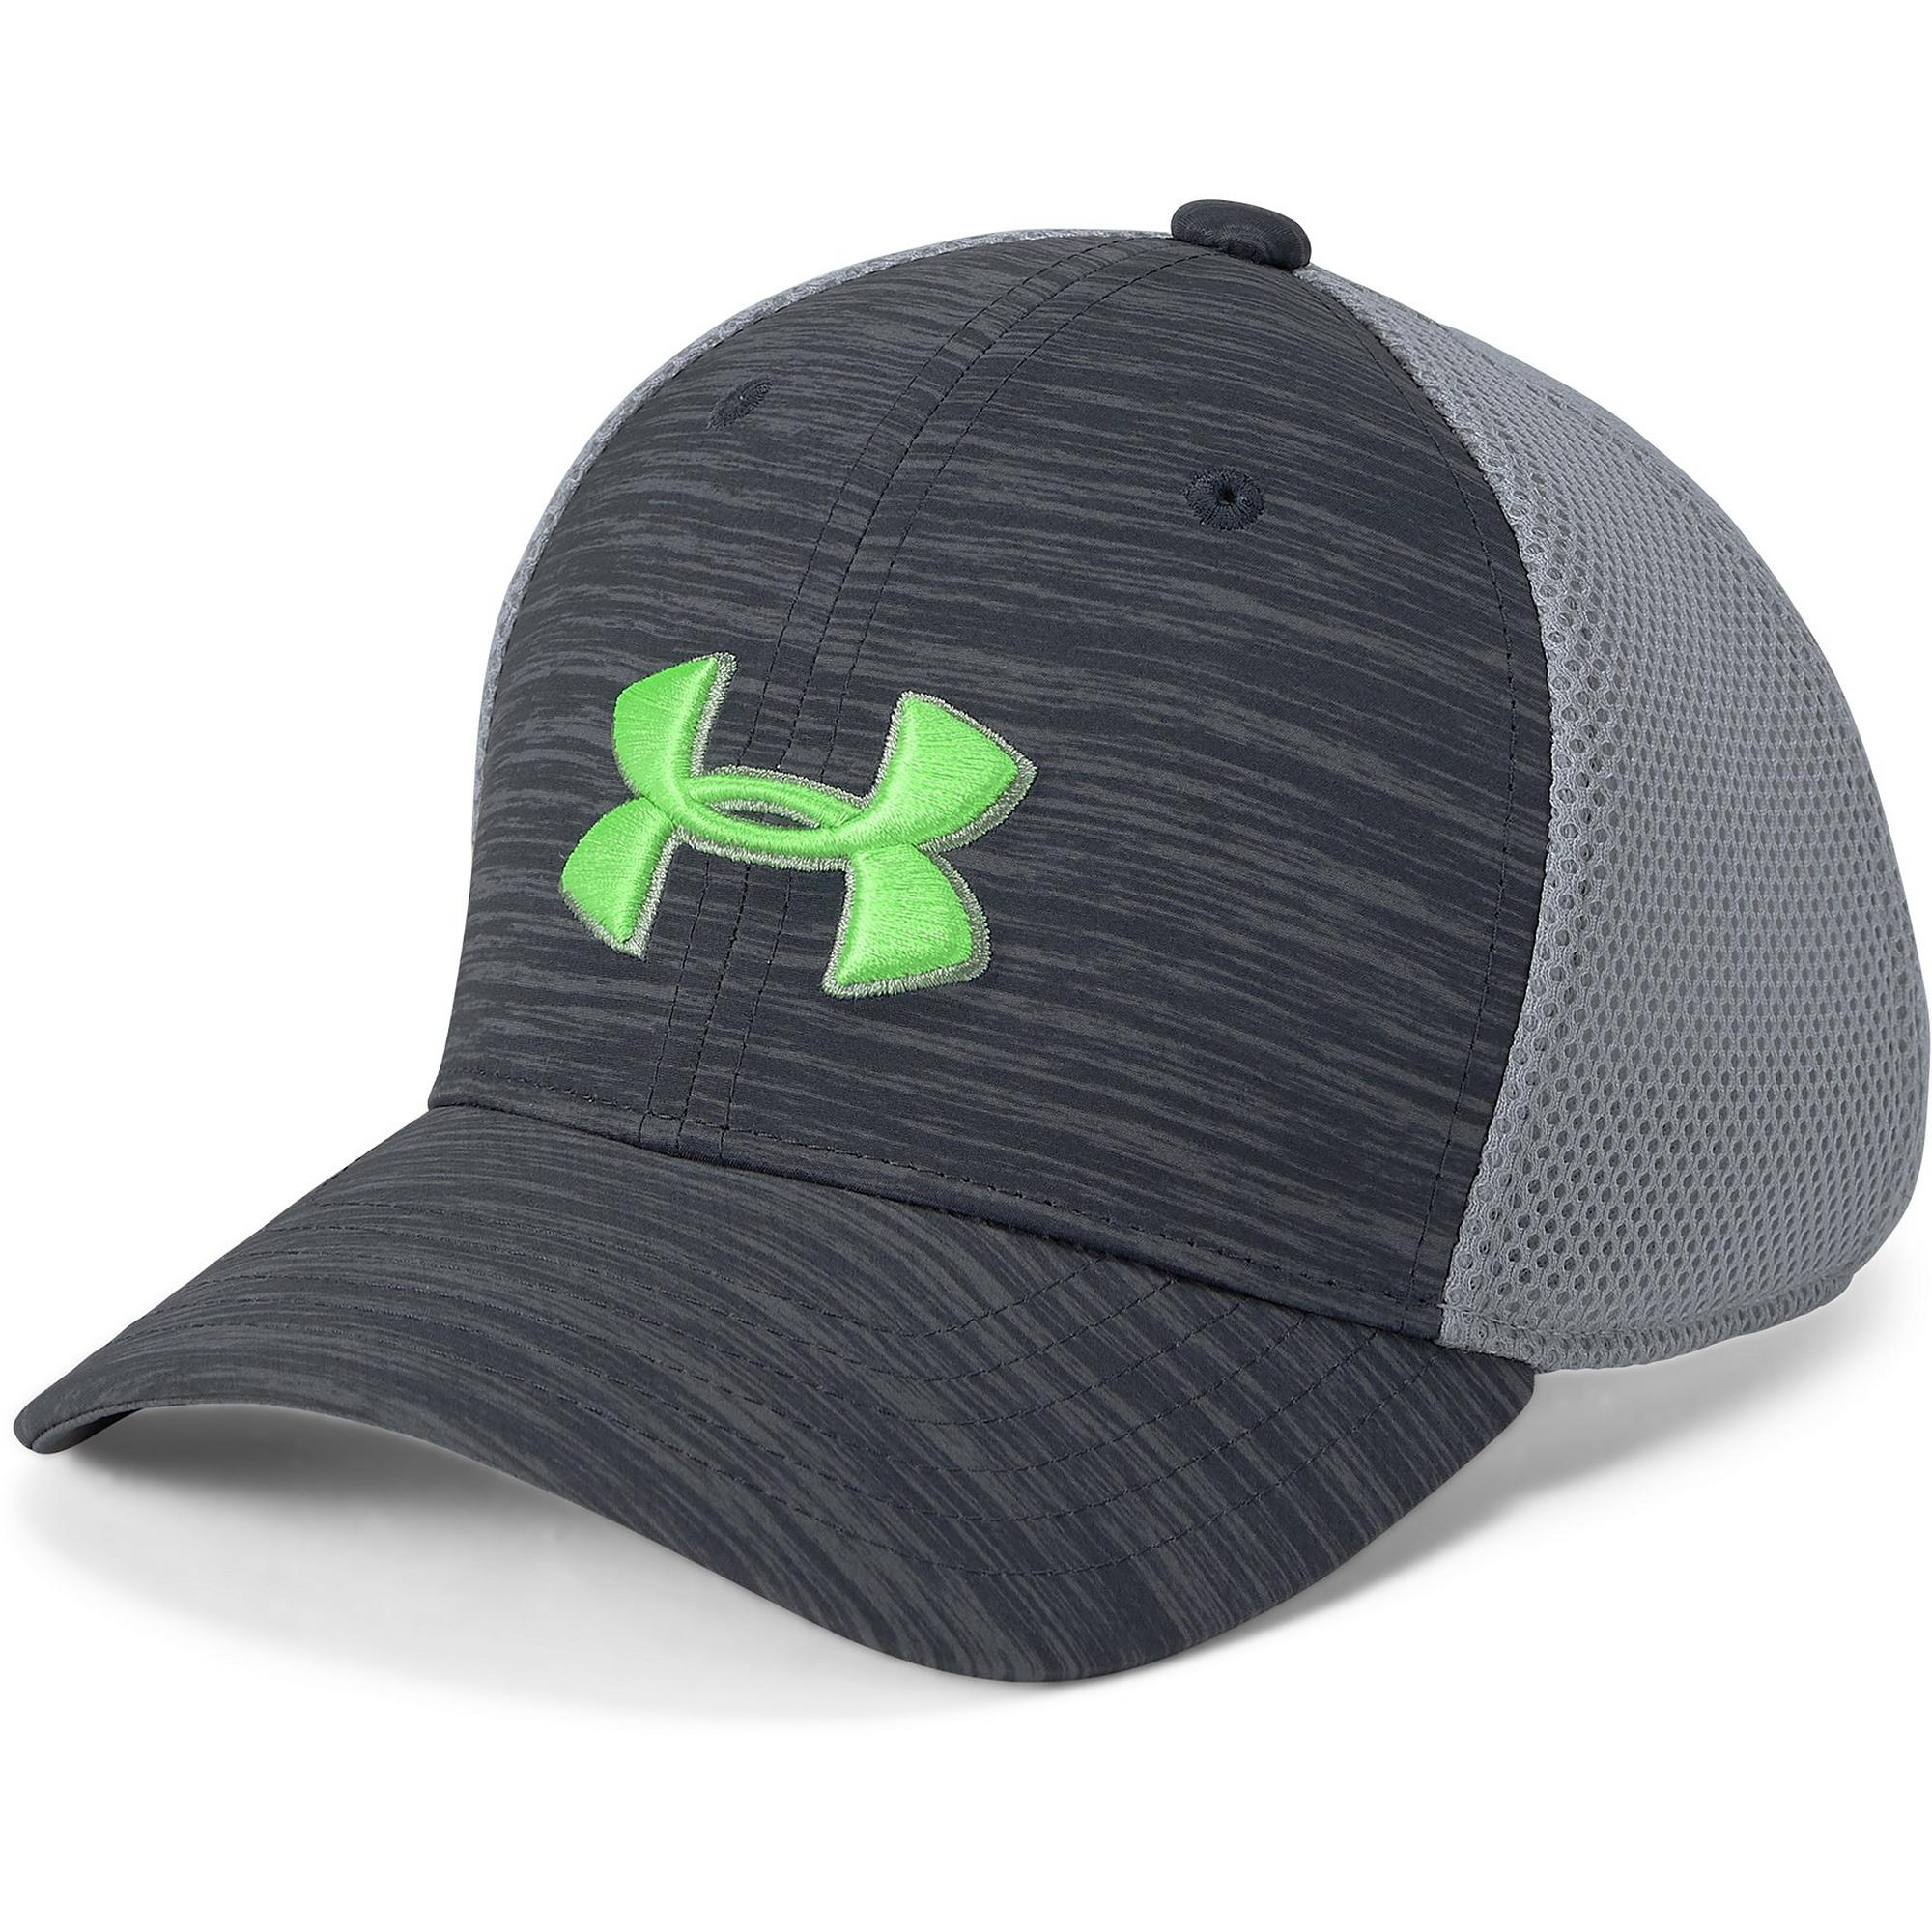 Junior Mesh 2 Cap